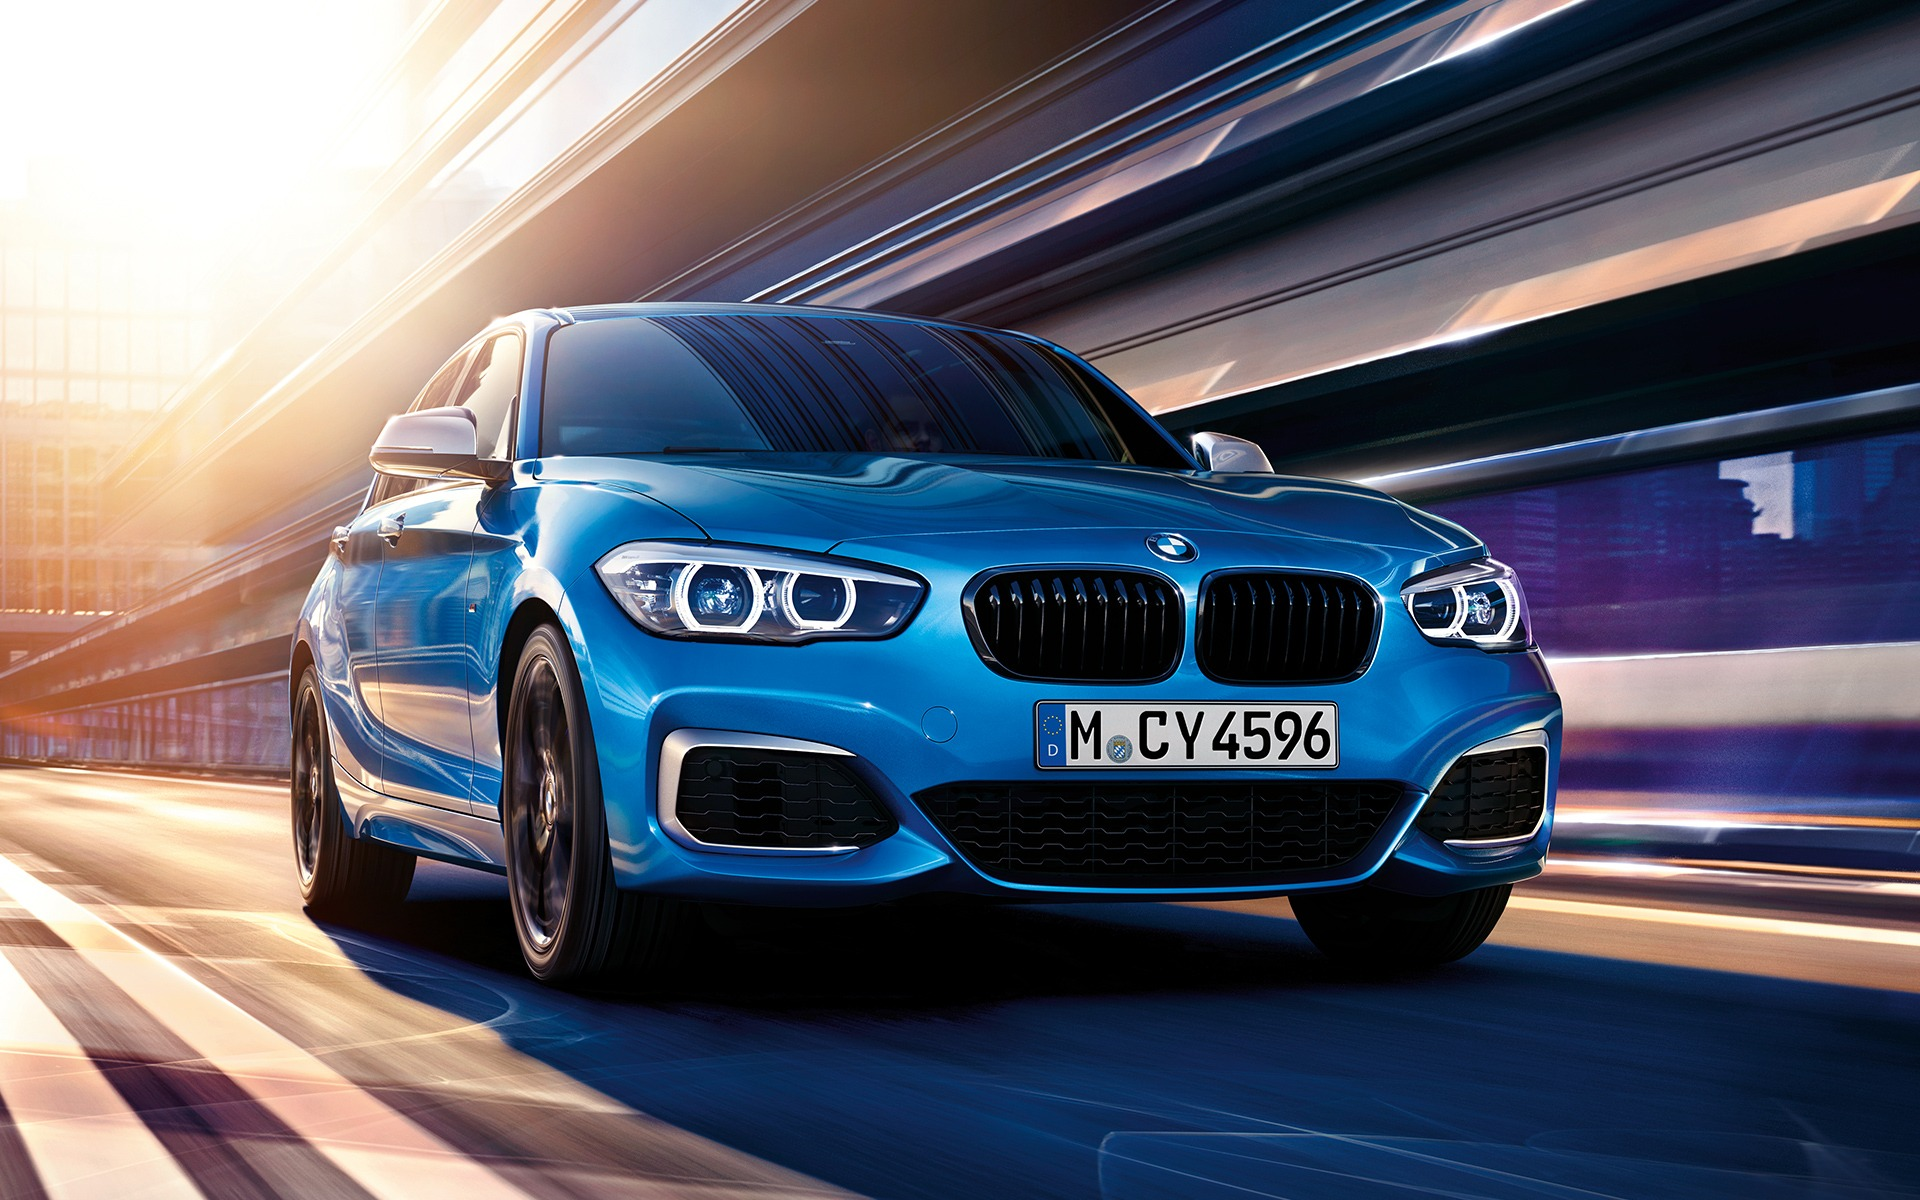 rent a classy bmw on short-term lease | foreigners.cz blog